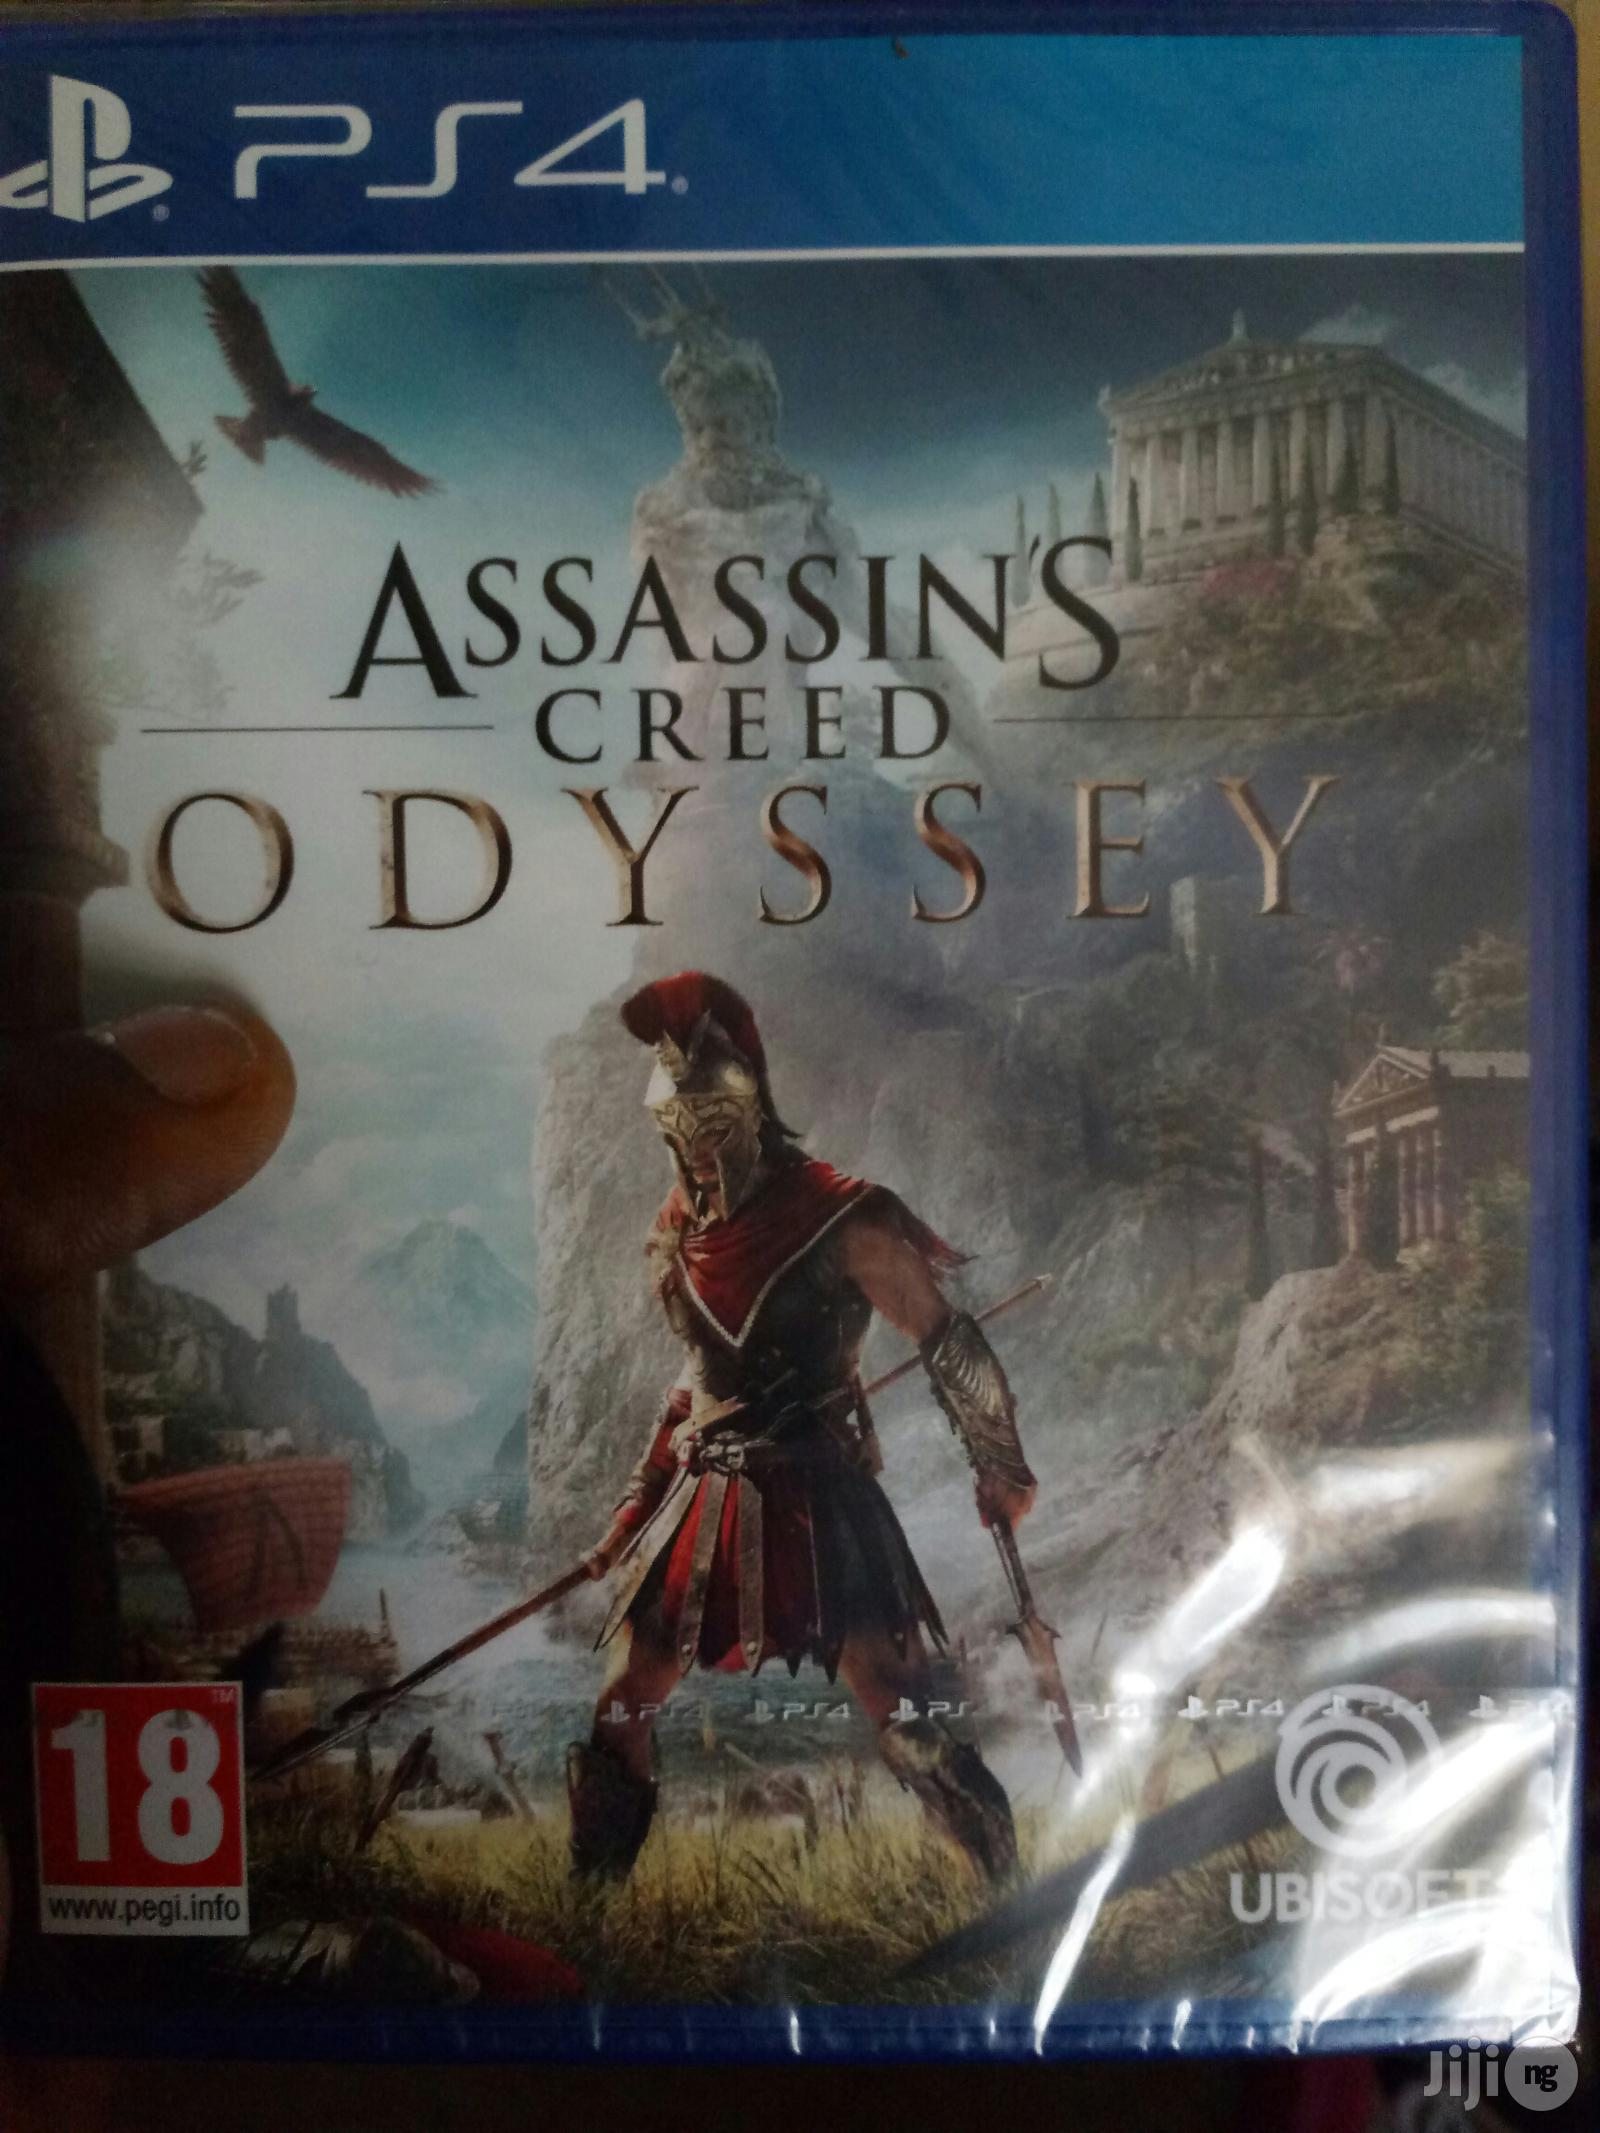 Ps4 Assassins Creed Odyssey In Agege Video Games Cheap Games Ng